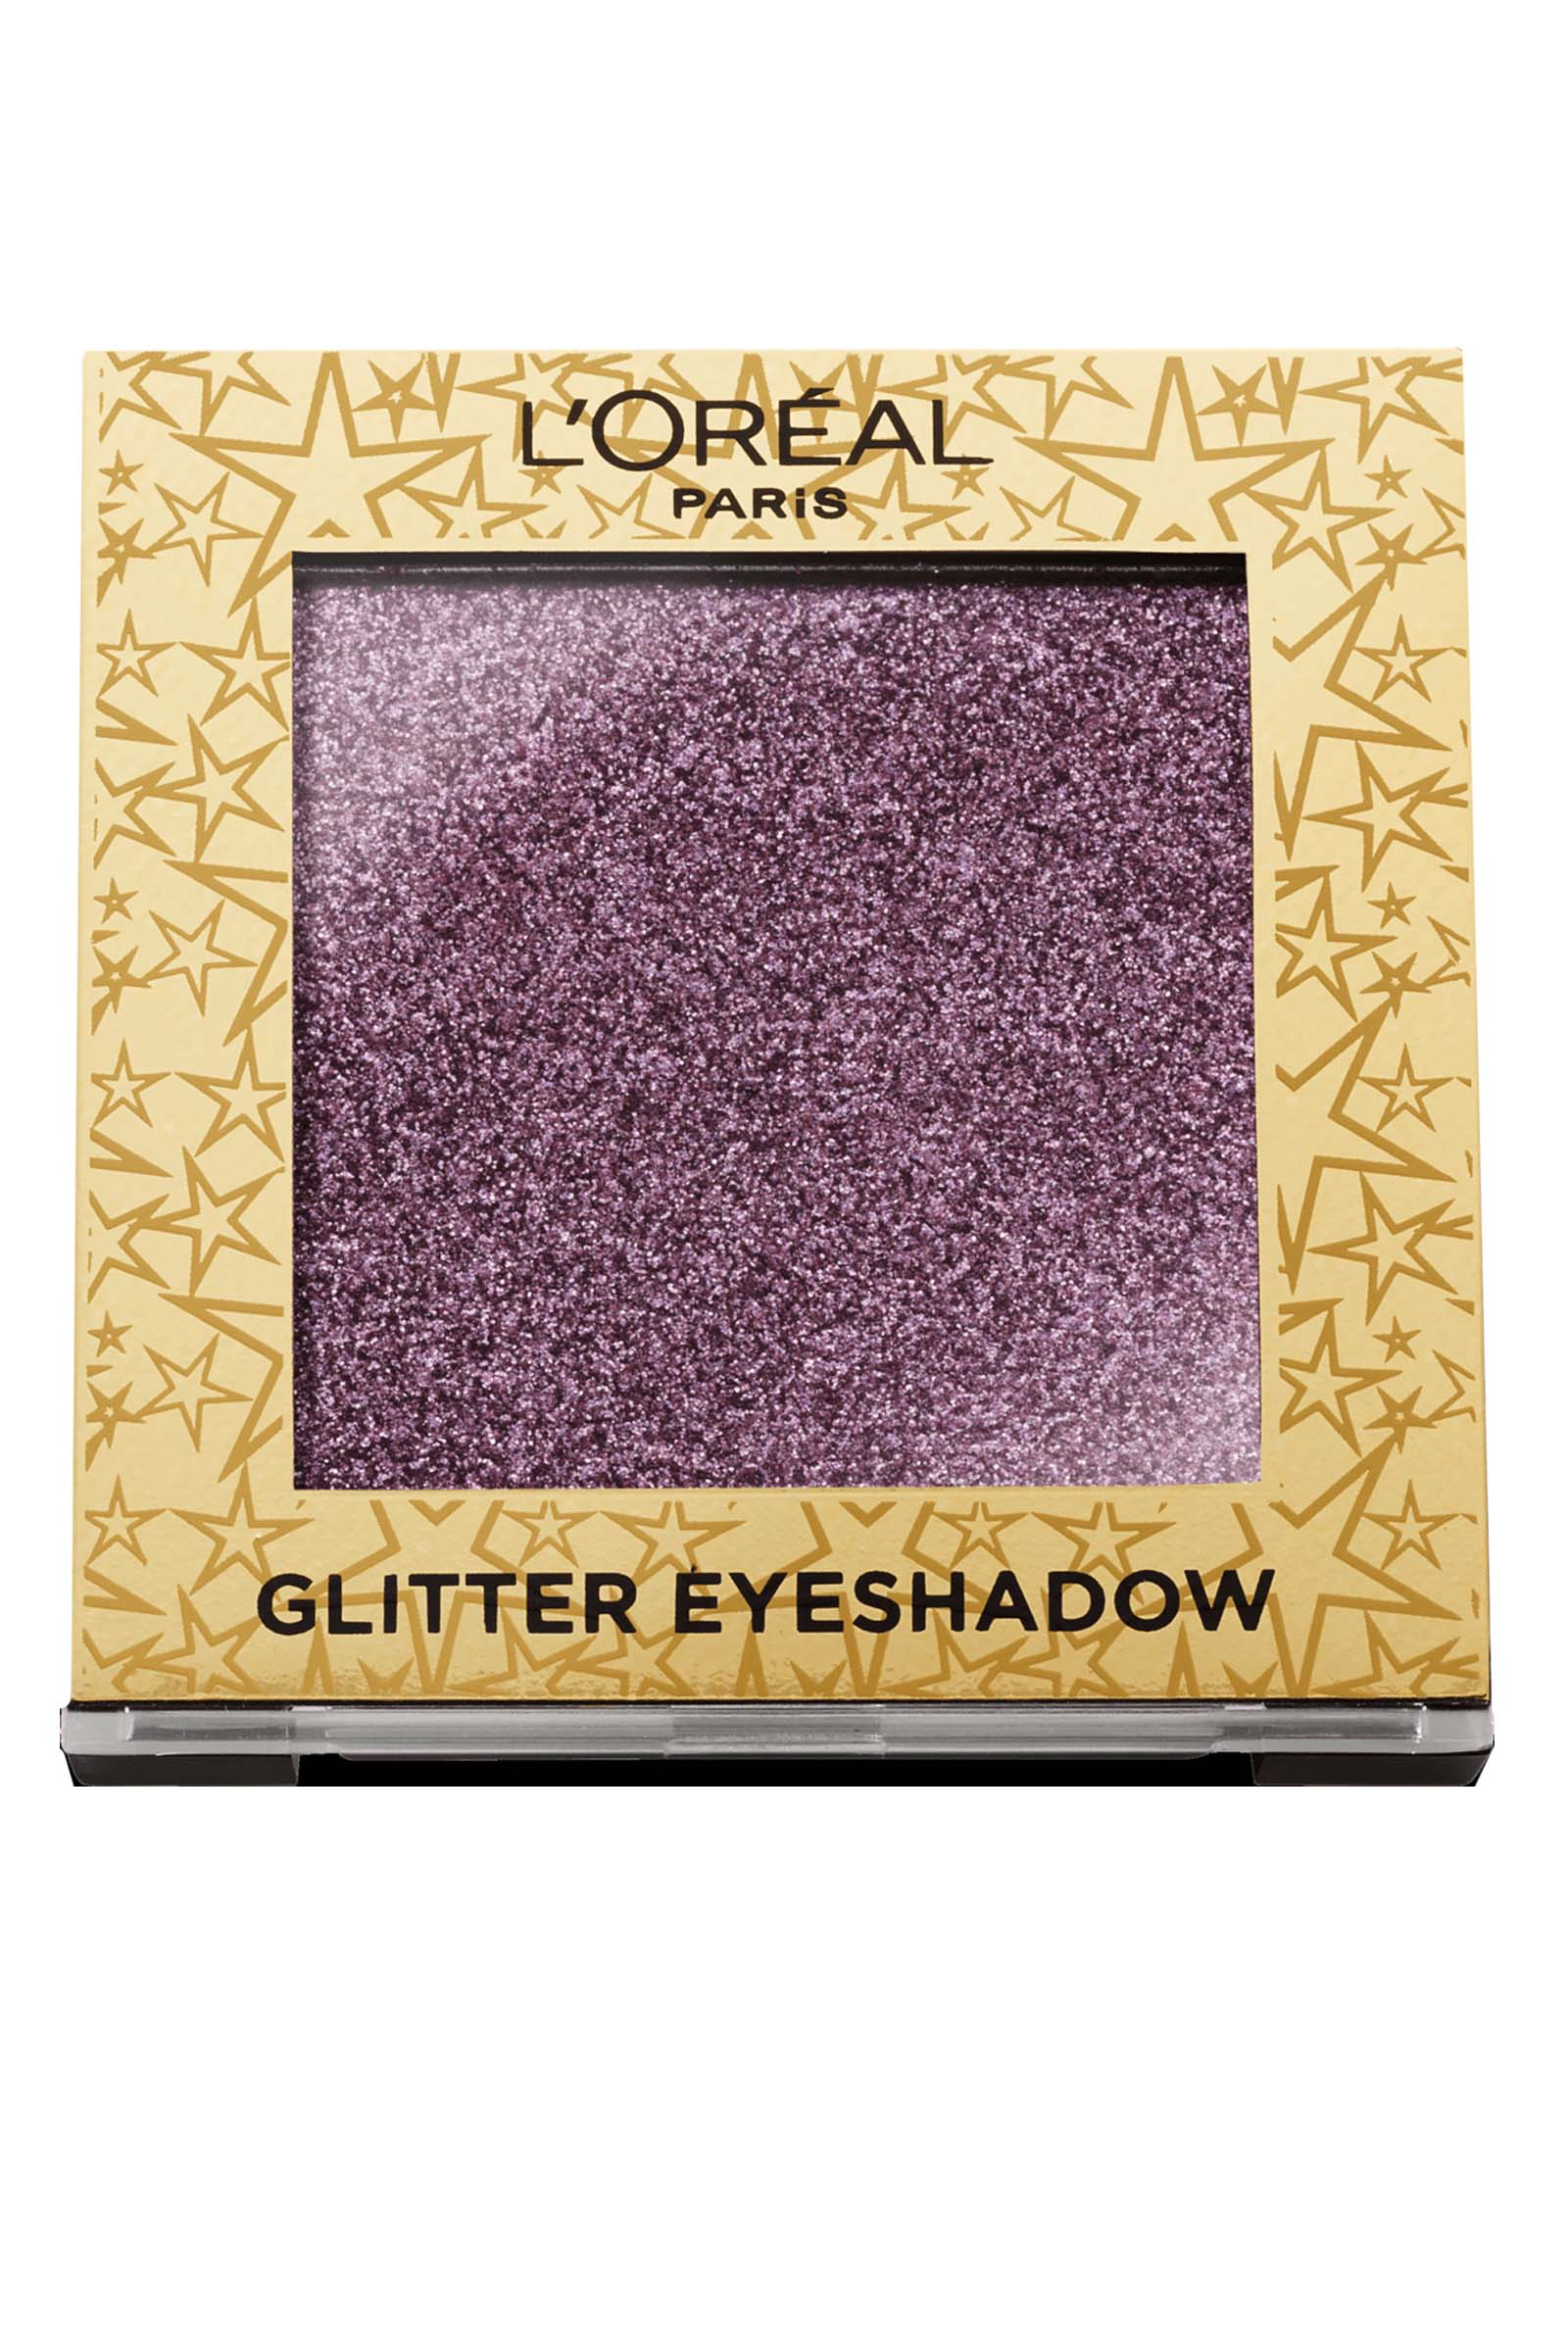 L Oreal L'Oreal Paris Glitter Eyeshadow Purple Lights #02